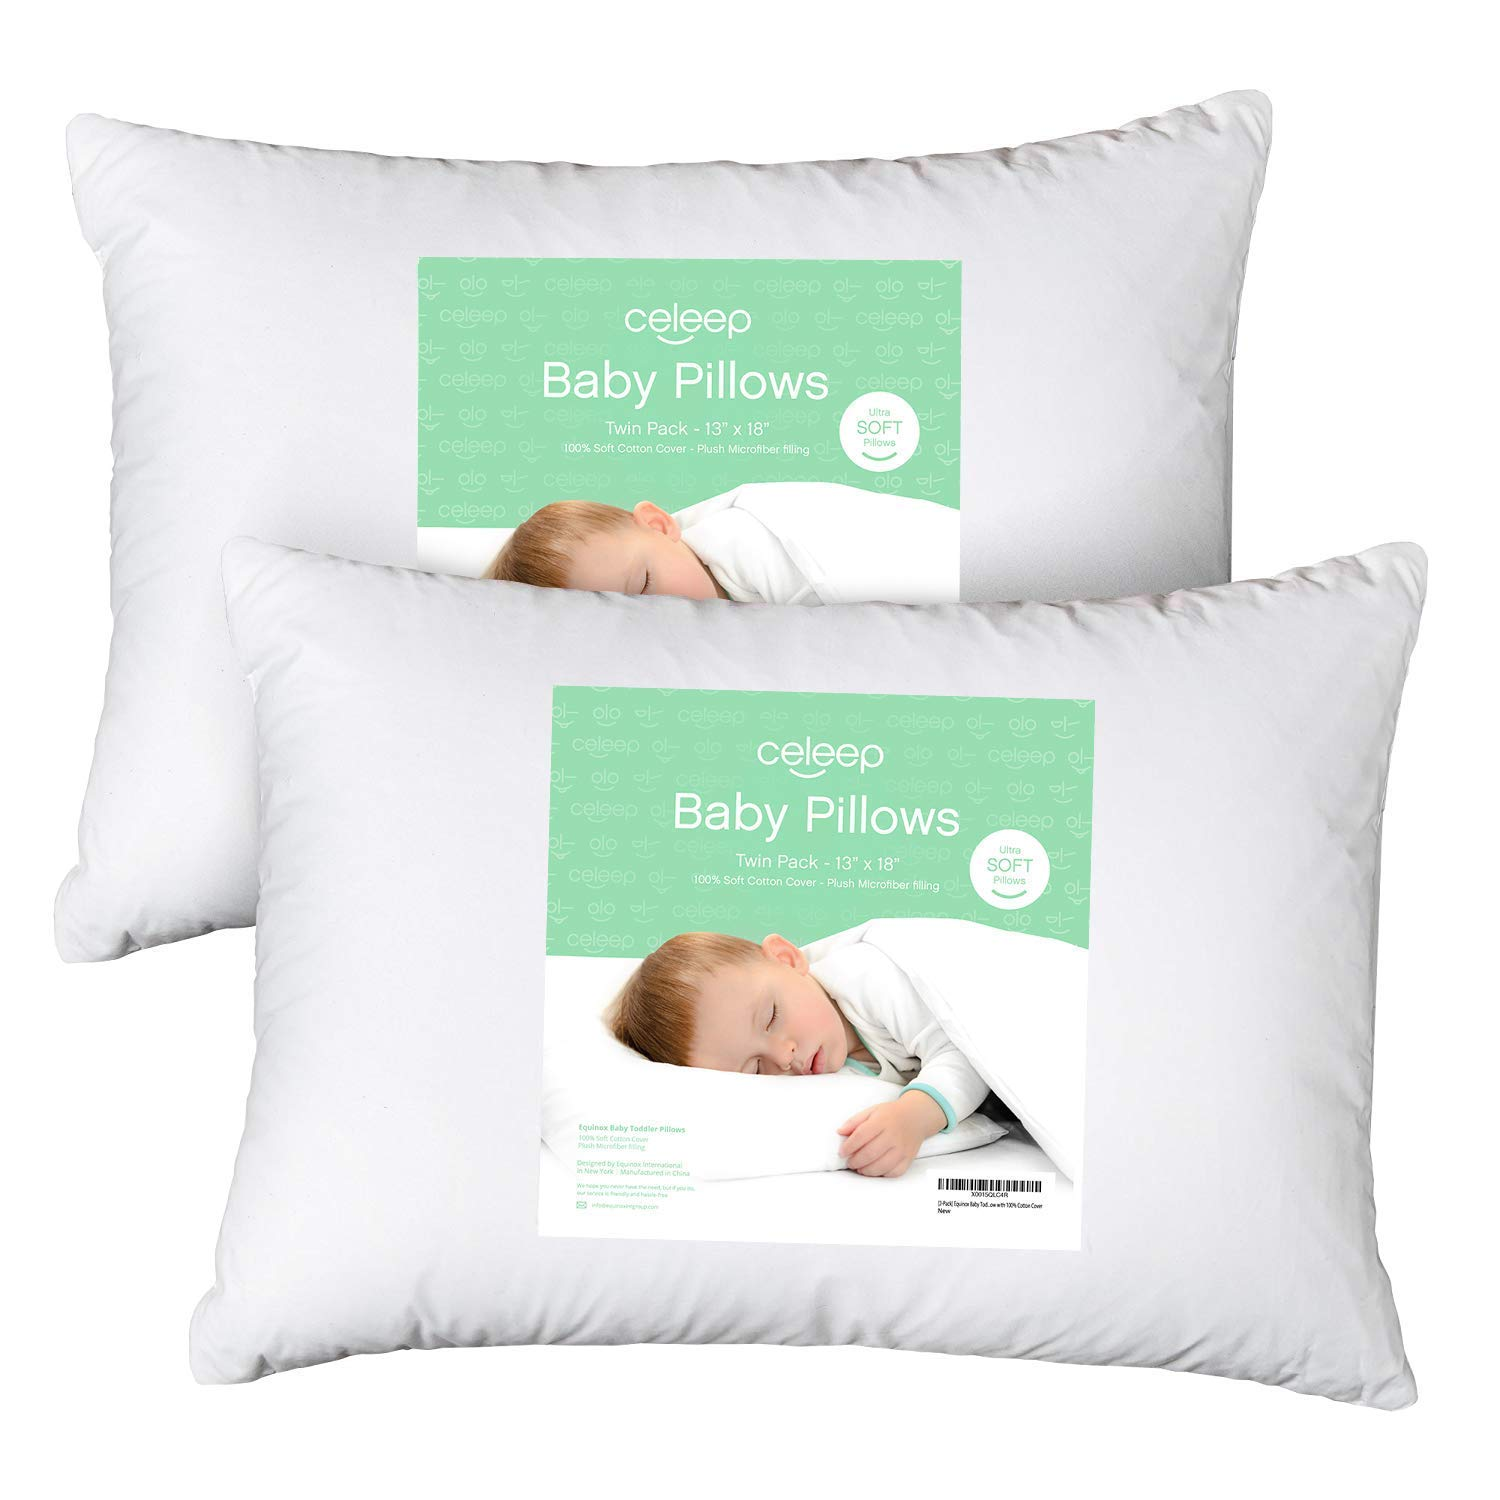 [2 Pack] Celeep Baby Toddler Pillow Set 13 x 18 Inches Organic Toddler Bedding Small Pillow Baby Pillow with 100% Natural Cotton Cover